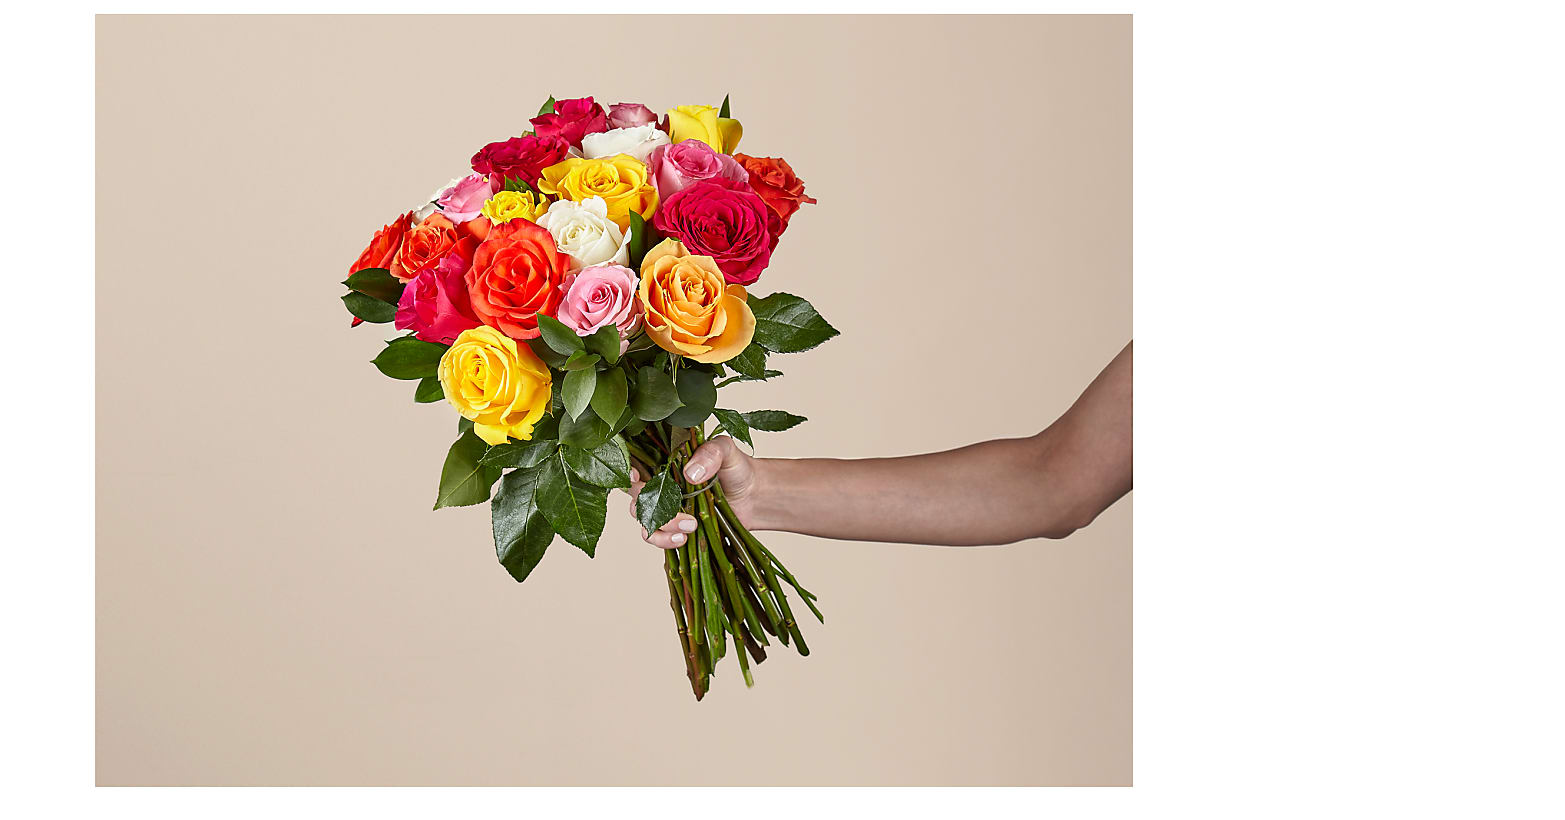 Mixed Roses with Vase - Image 2 Of 6